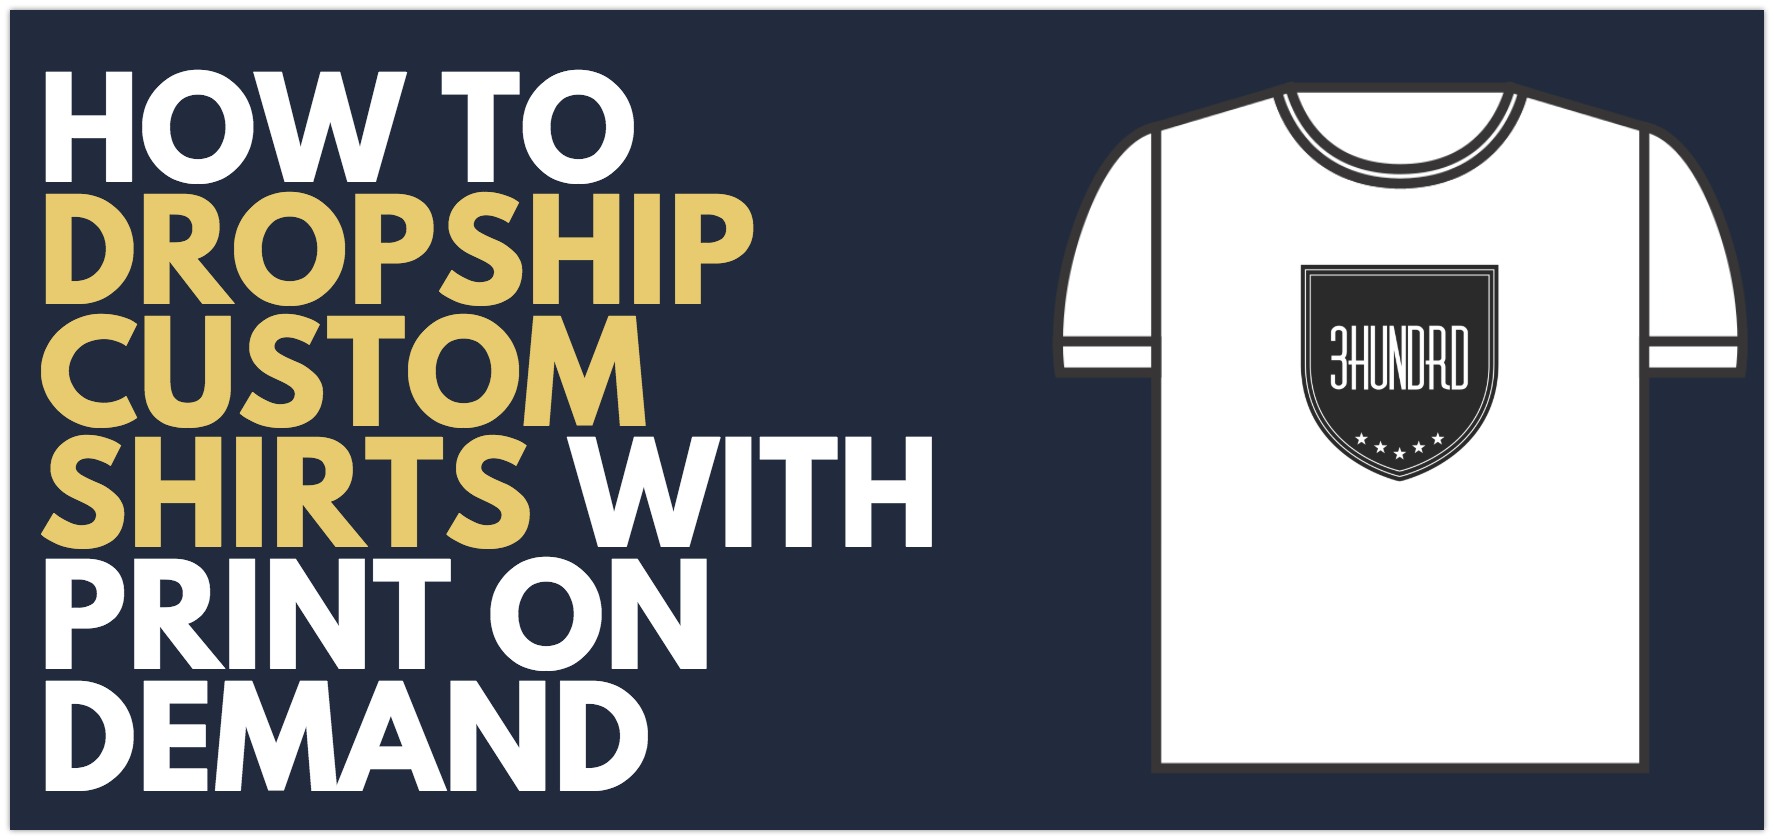 how to dropship custom t shirts with print on demand